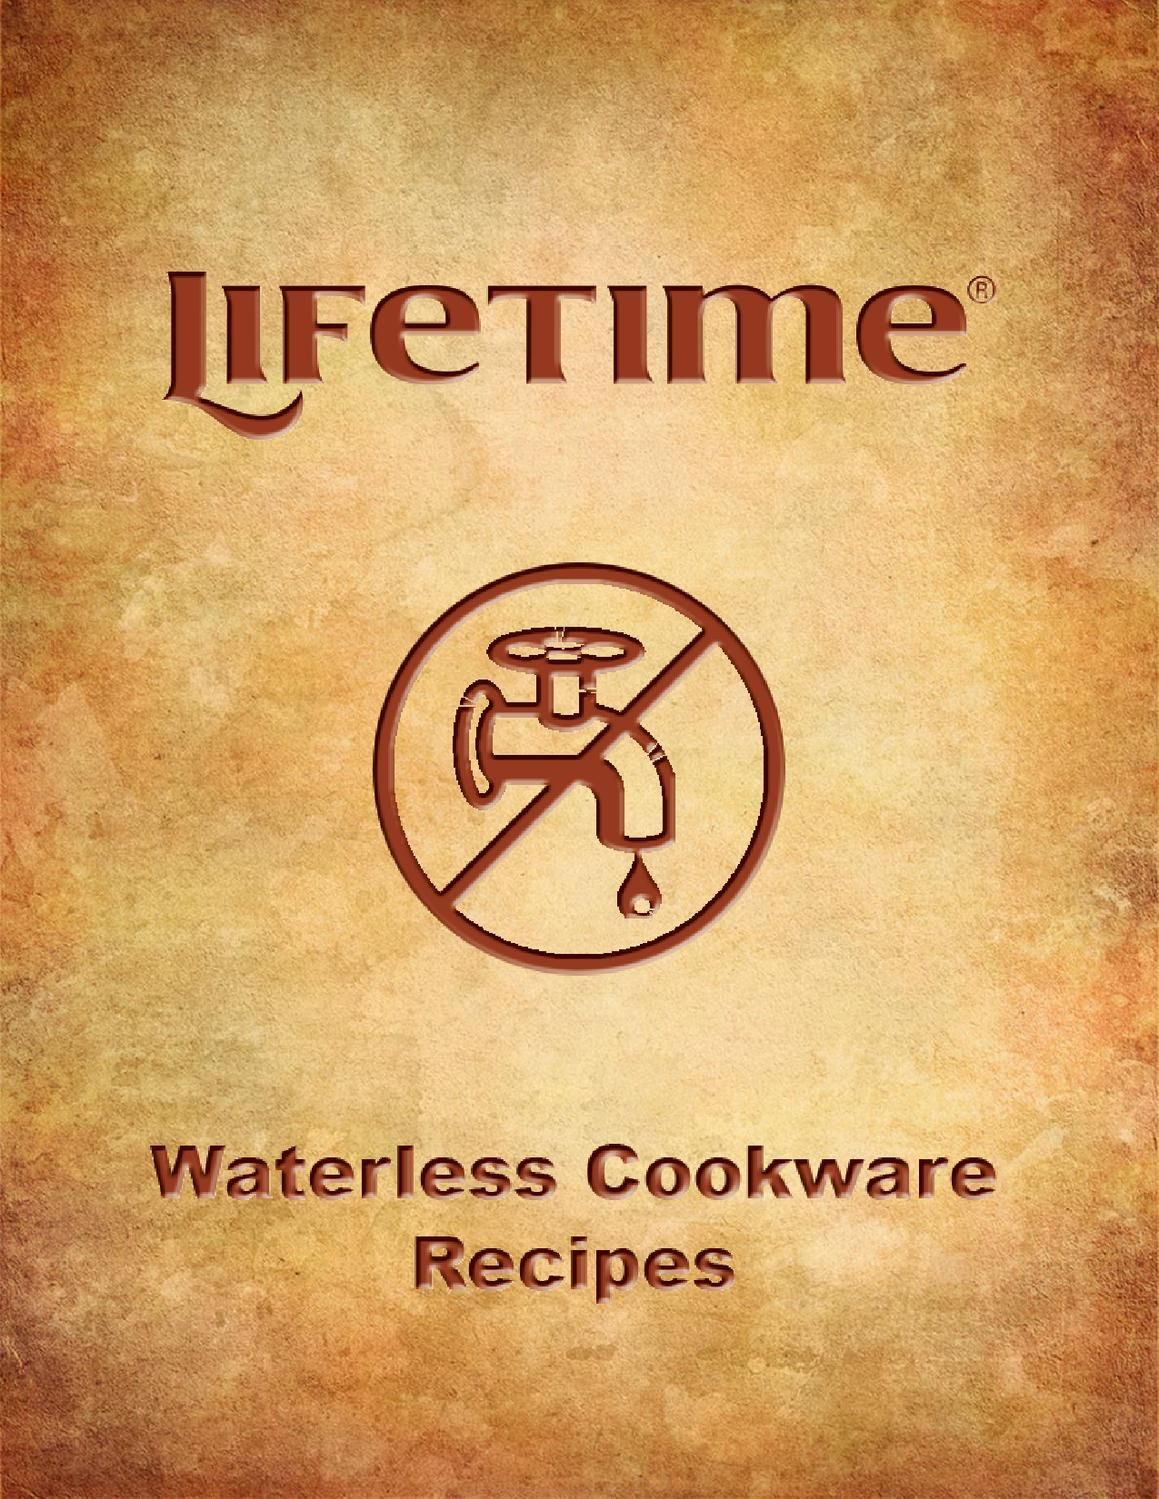 Lifetime Waterless Cookware Recipes in 2019 | Kitchen craft ...